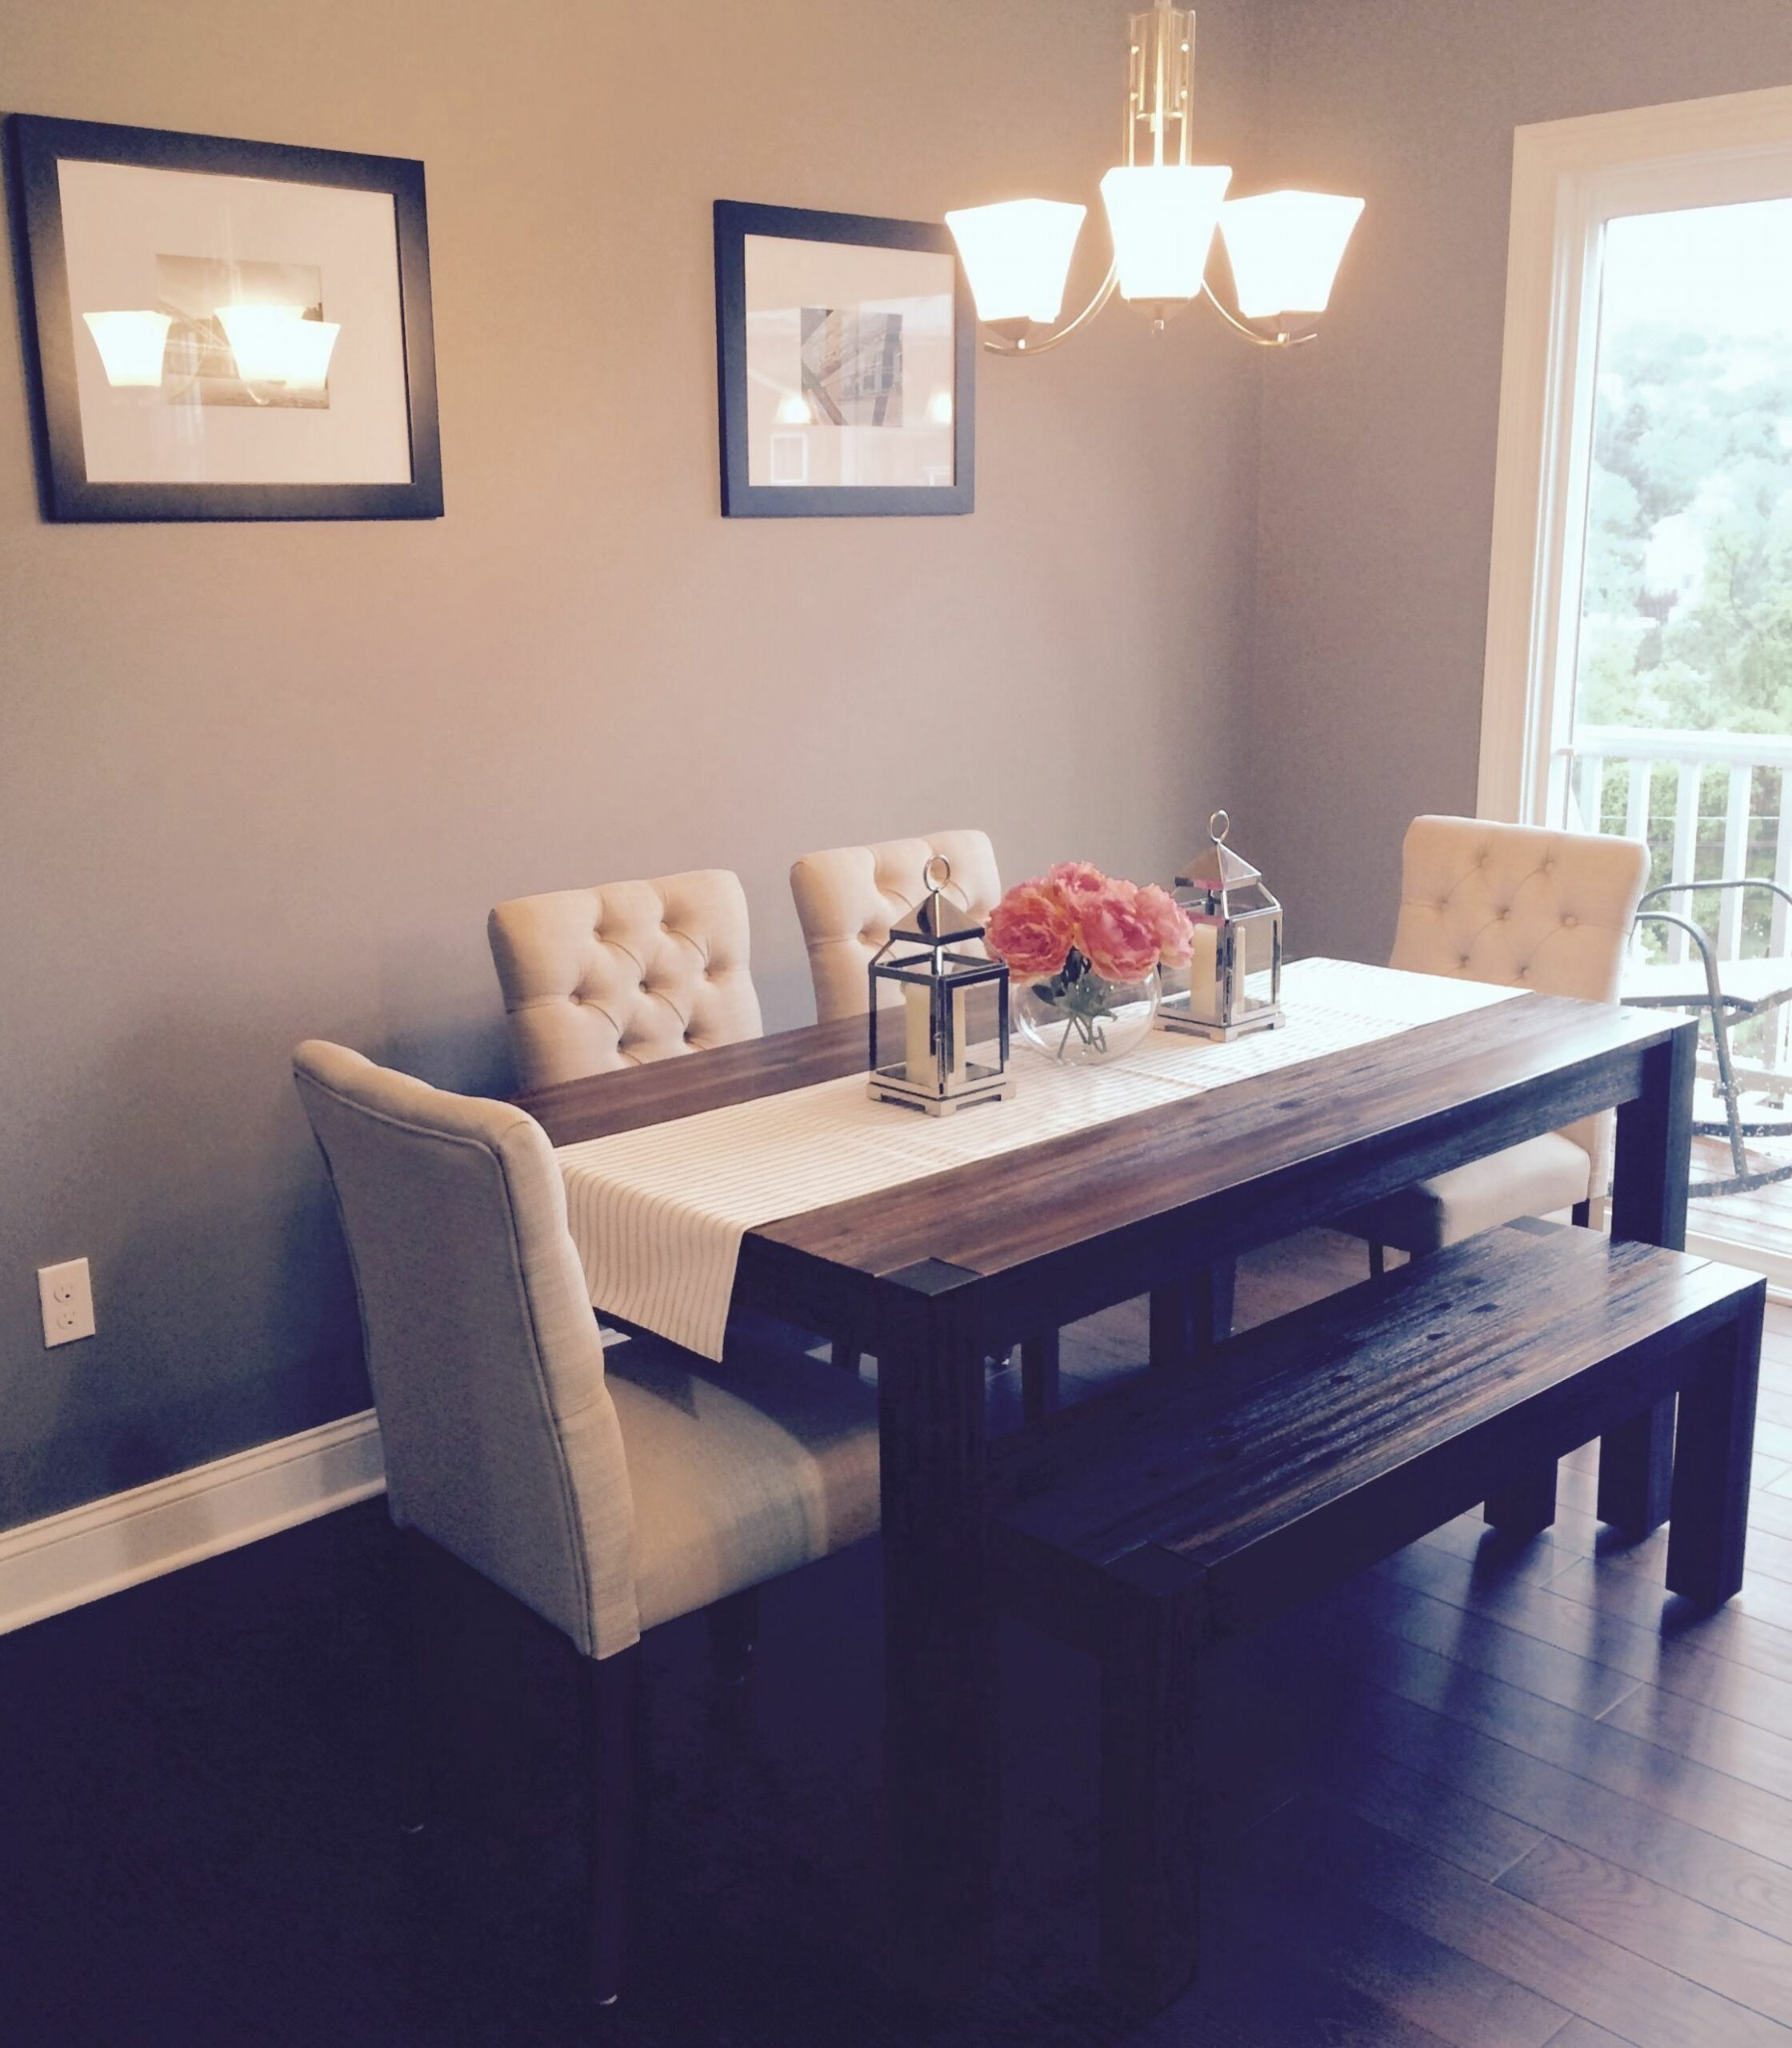 8 Cozy Dining Room Table Decor Ideas (With images) | Dining room ..